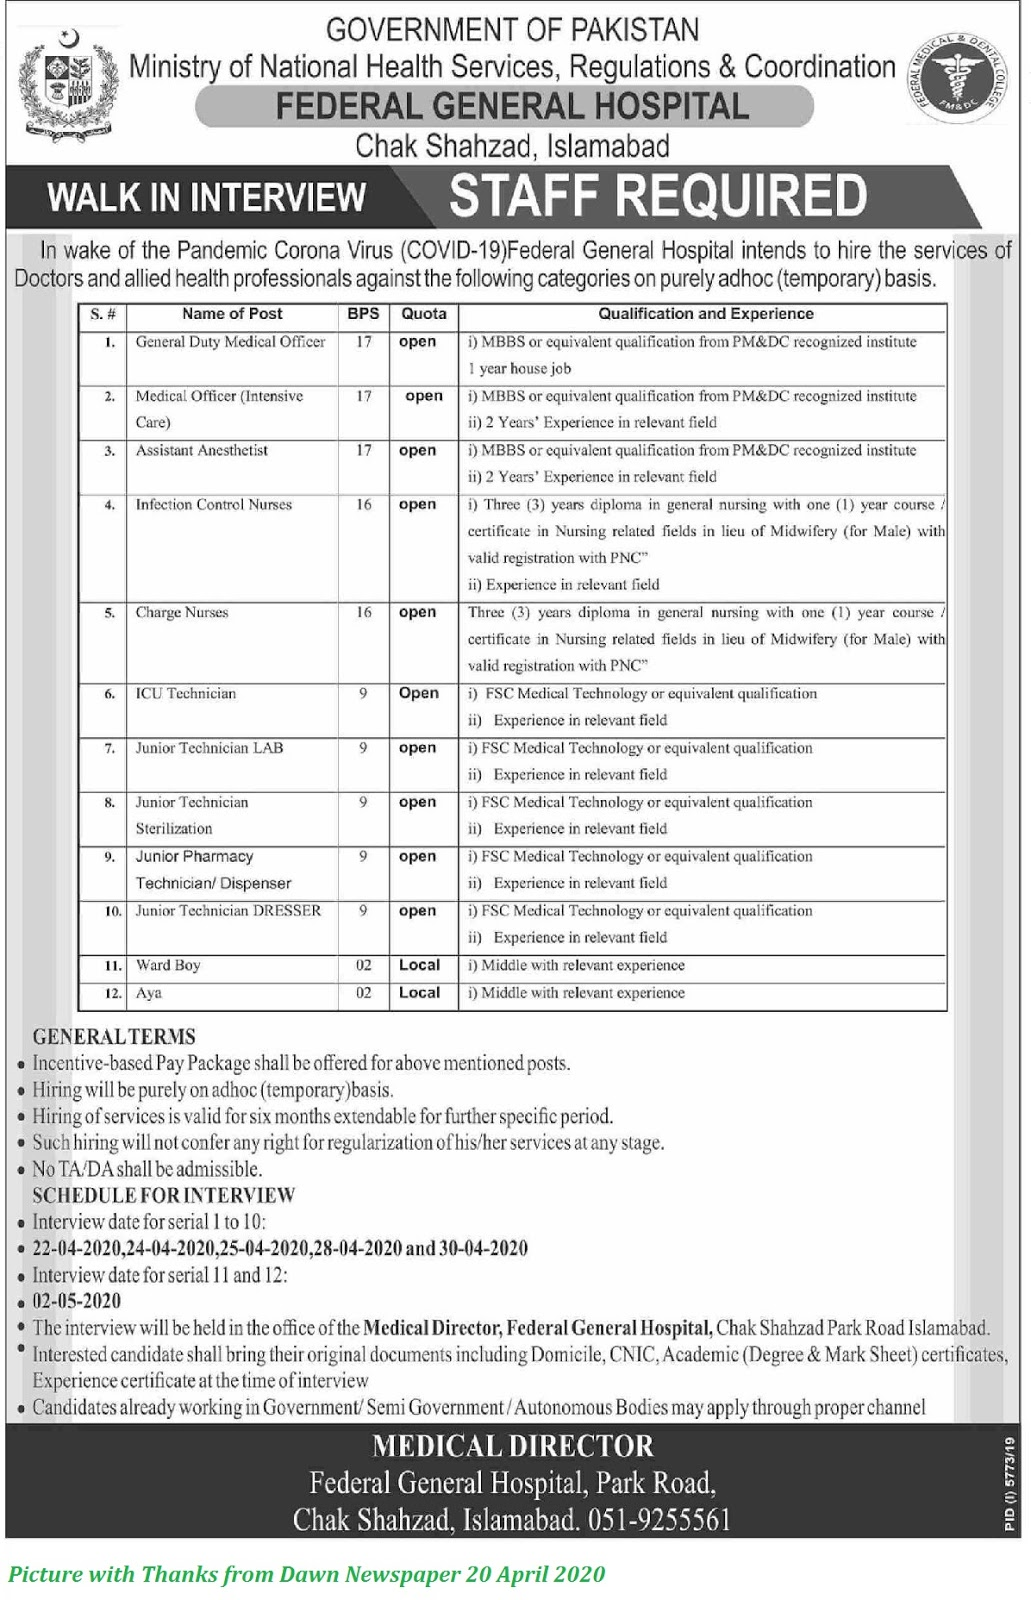 Federal General Hospital Islamabad Jobs 2020 - Various Medical Jobs Announced on Oper Merit for Males & Females